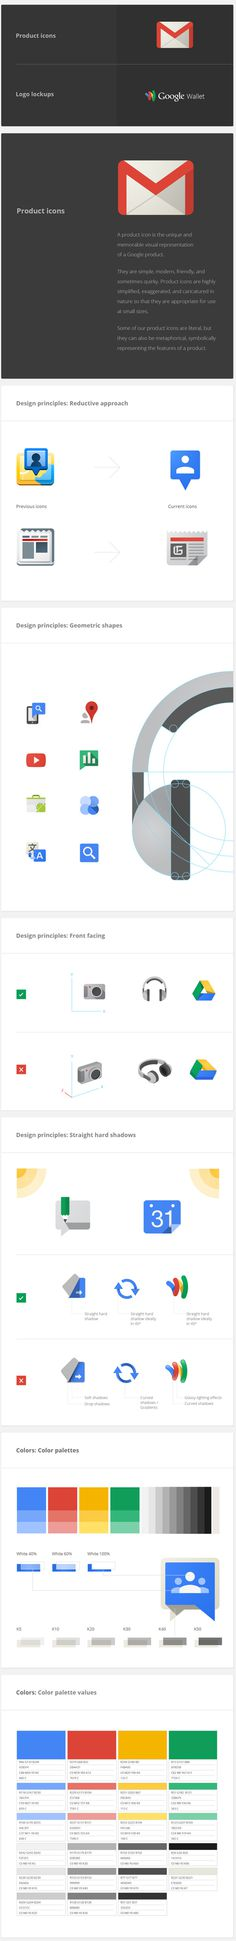 Google Visual Assets Guidelines Part 1 on Behance #visual #guidelines #assets #brand #google